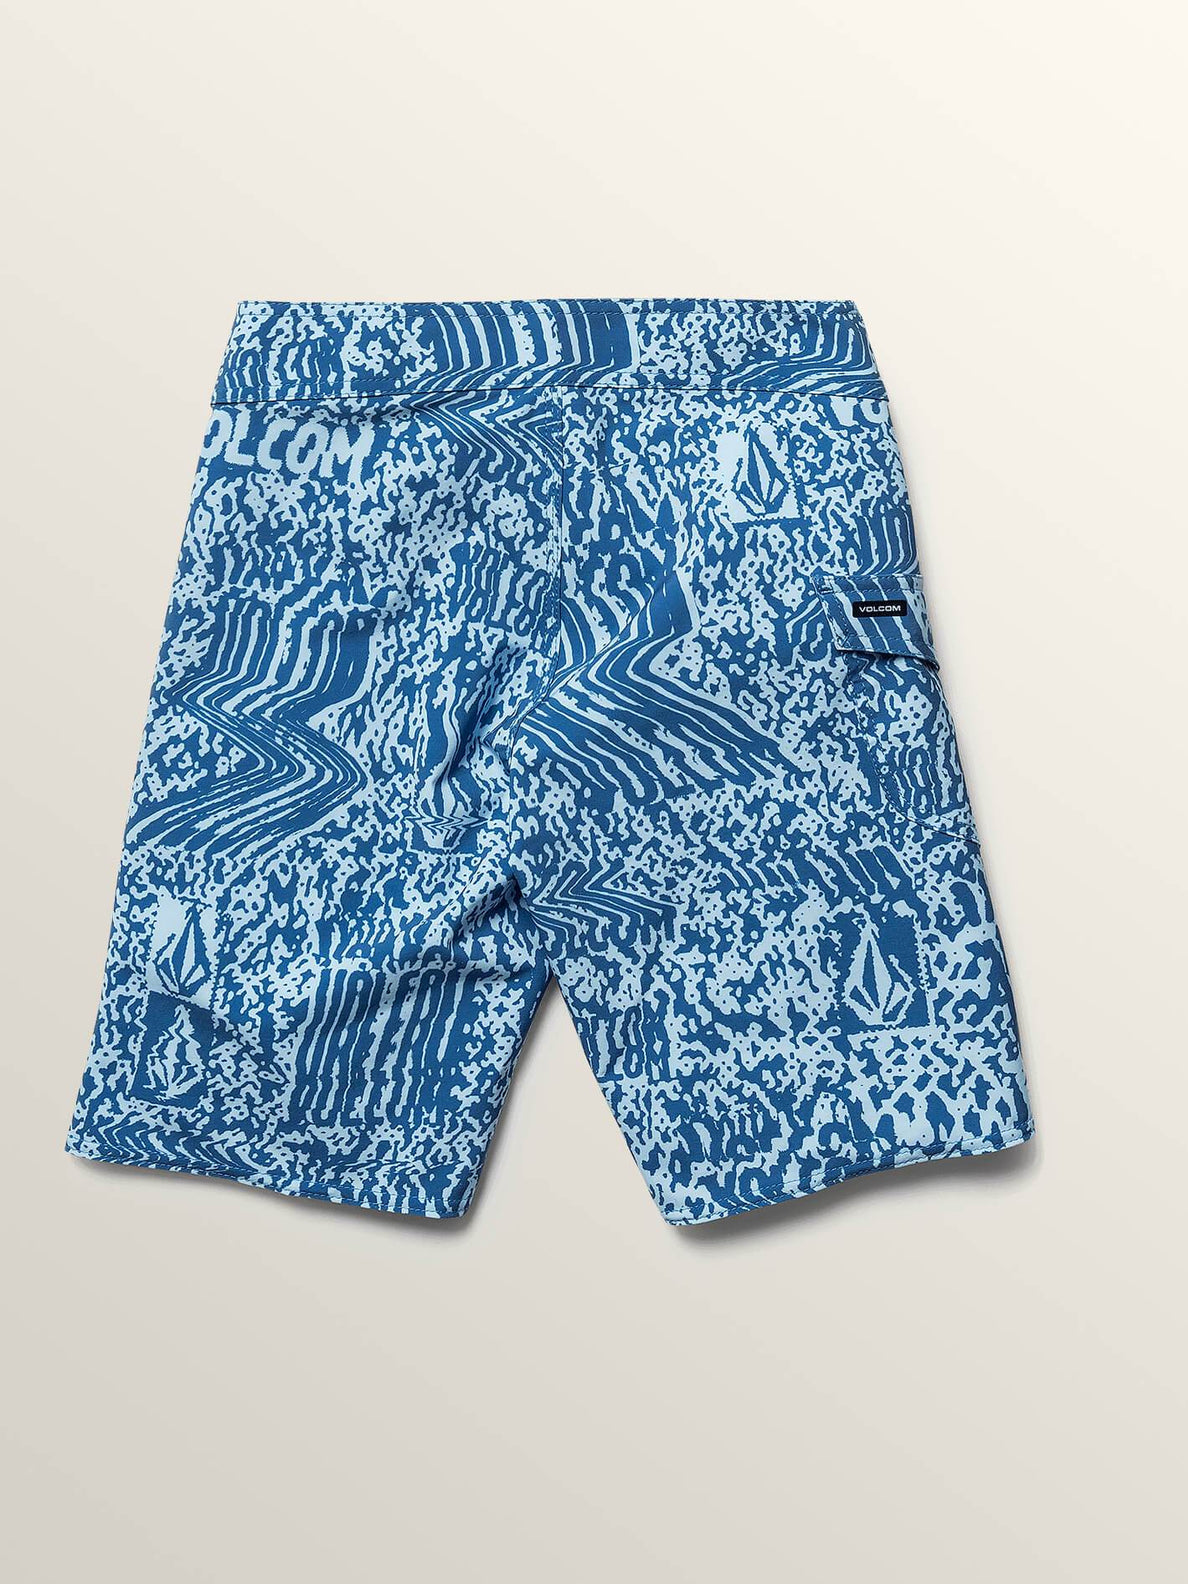 Big Boys Logo Plasm Mod Boardshorts In Arctic Blue, Back View